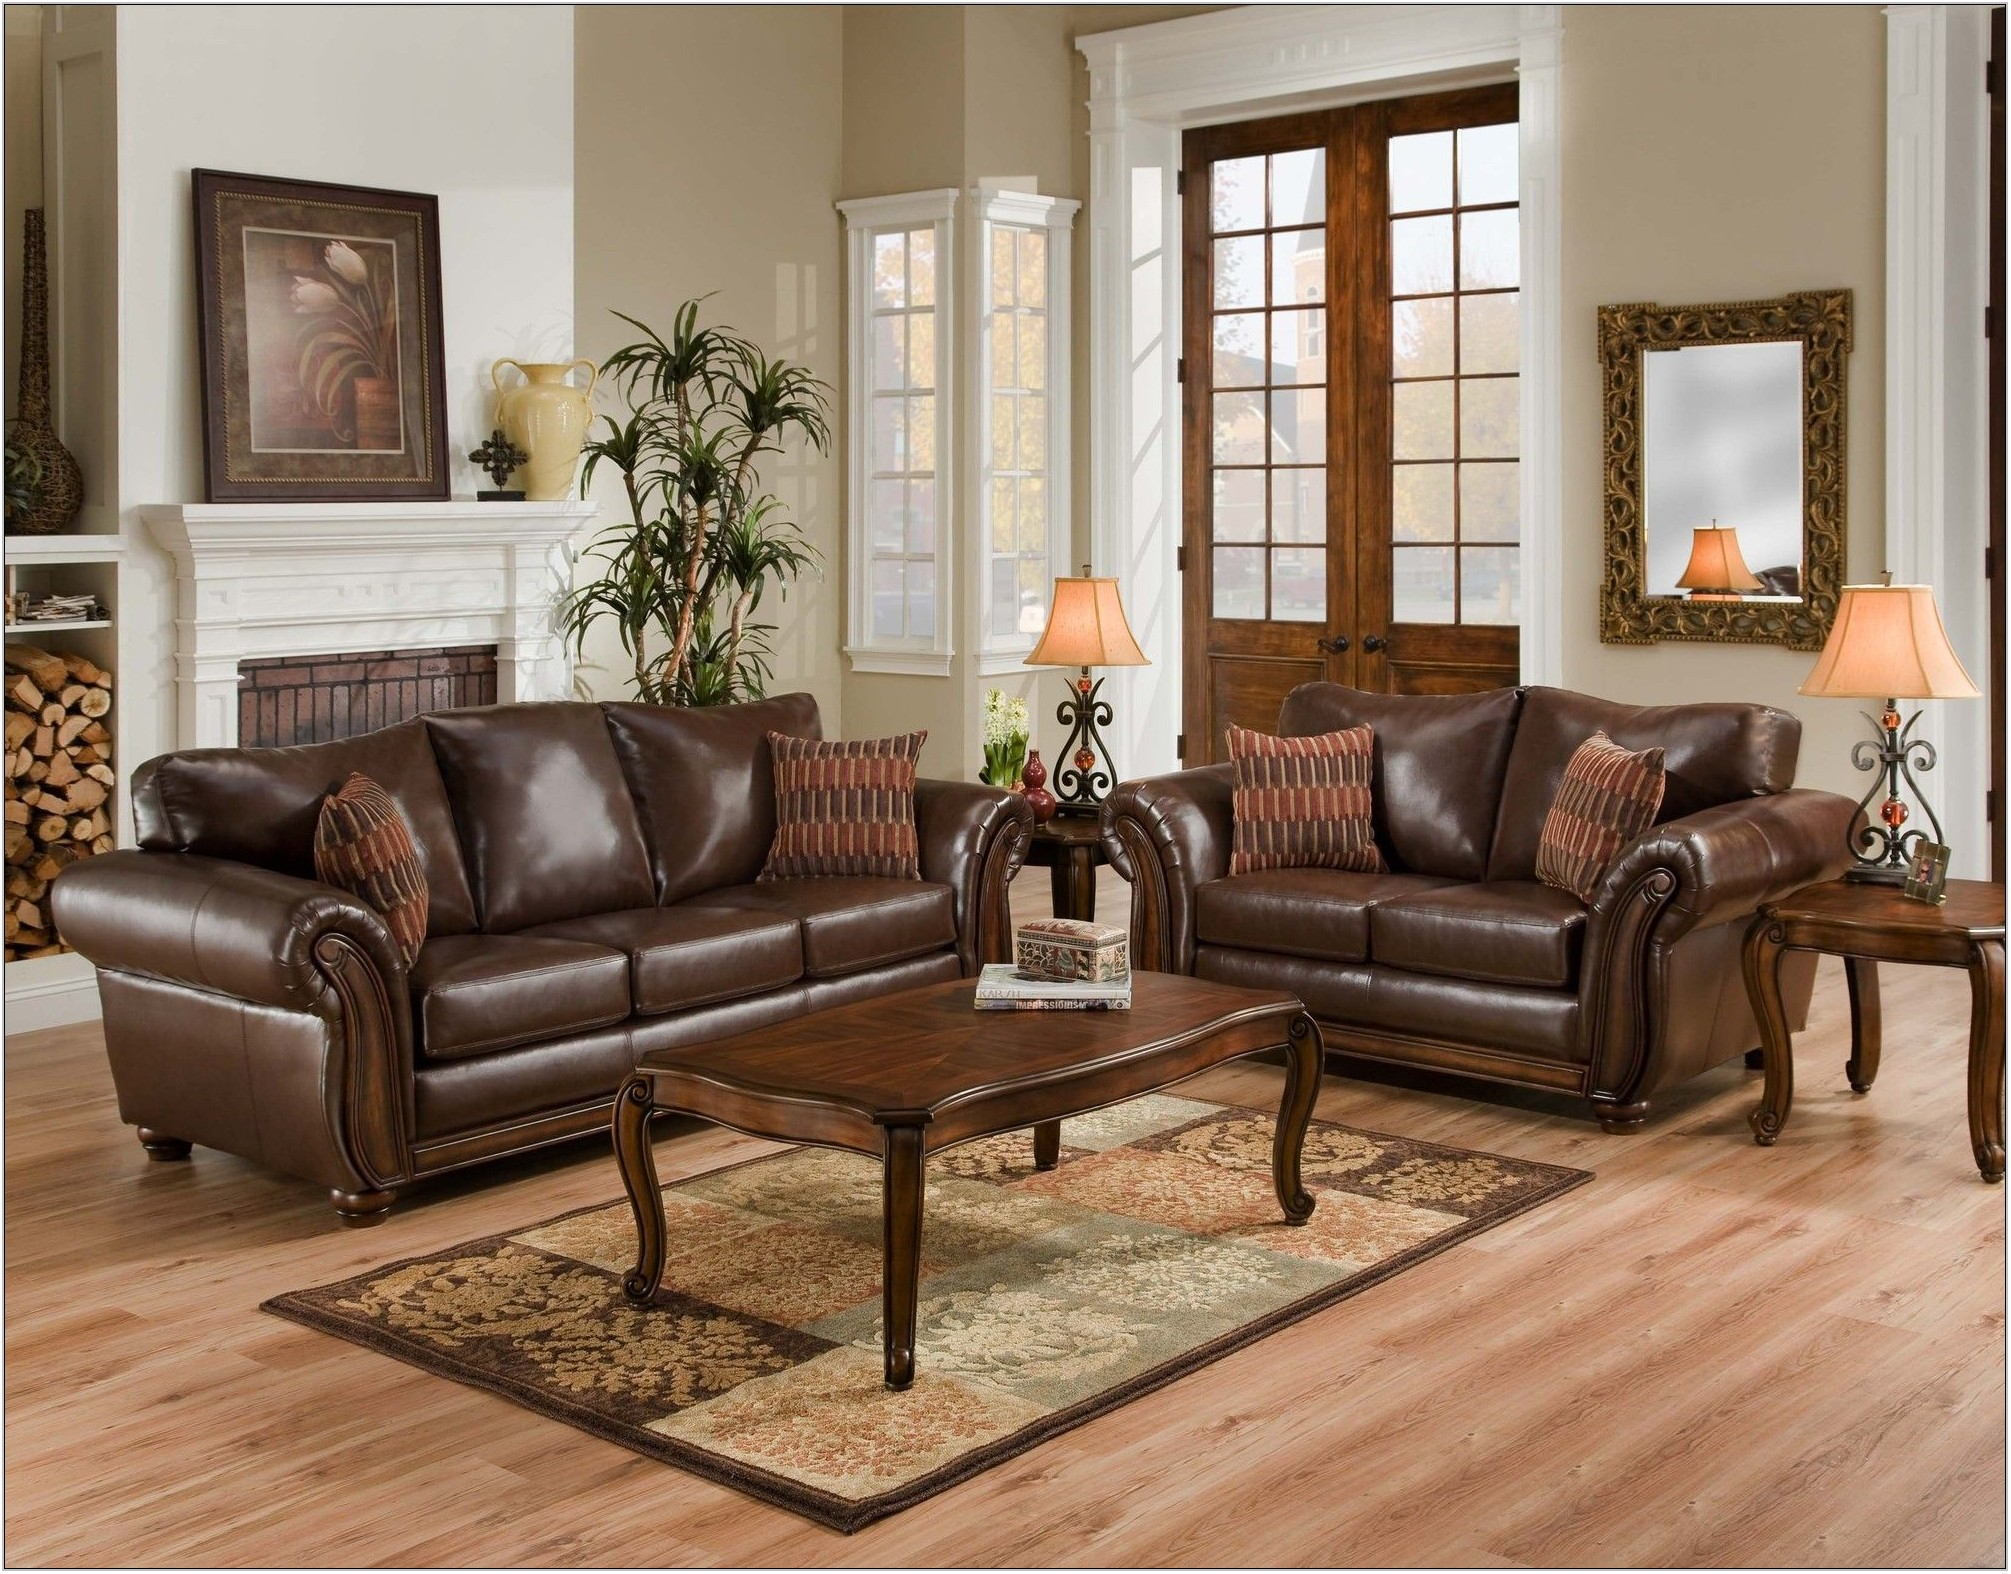 Wayfair Leather Living Room Furniture